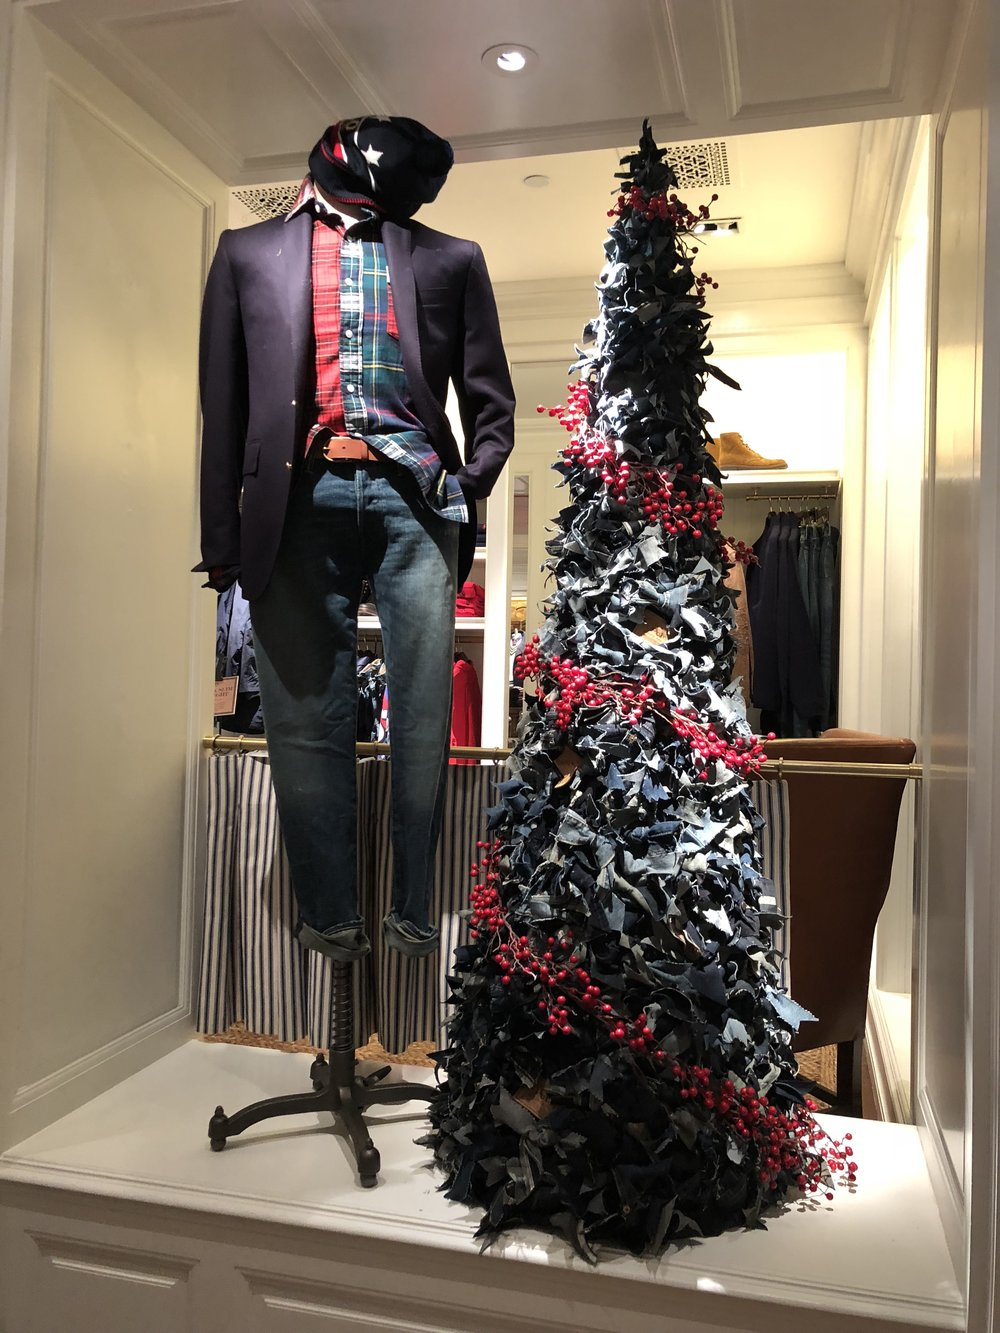 Denim Holiday Tree for Ralph Lauren Flagship